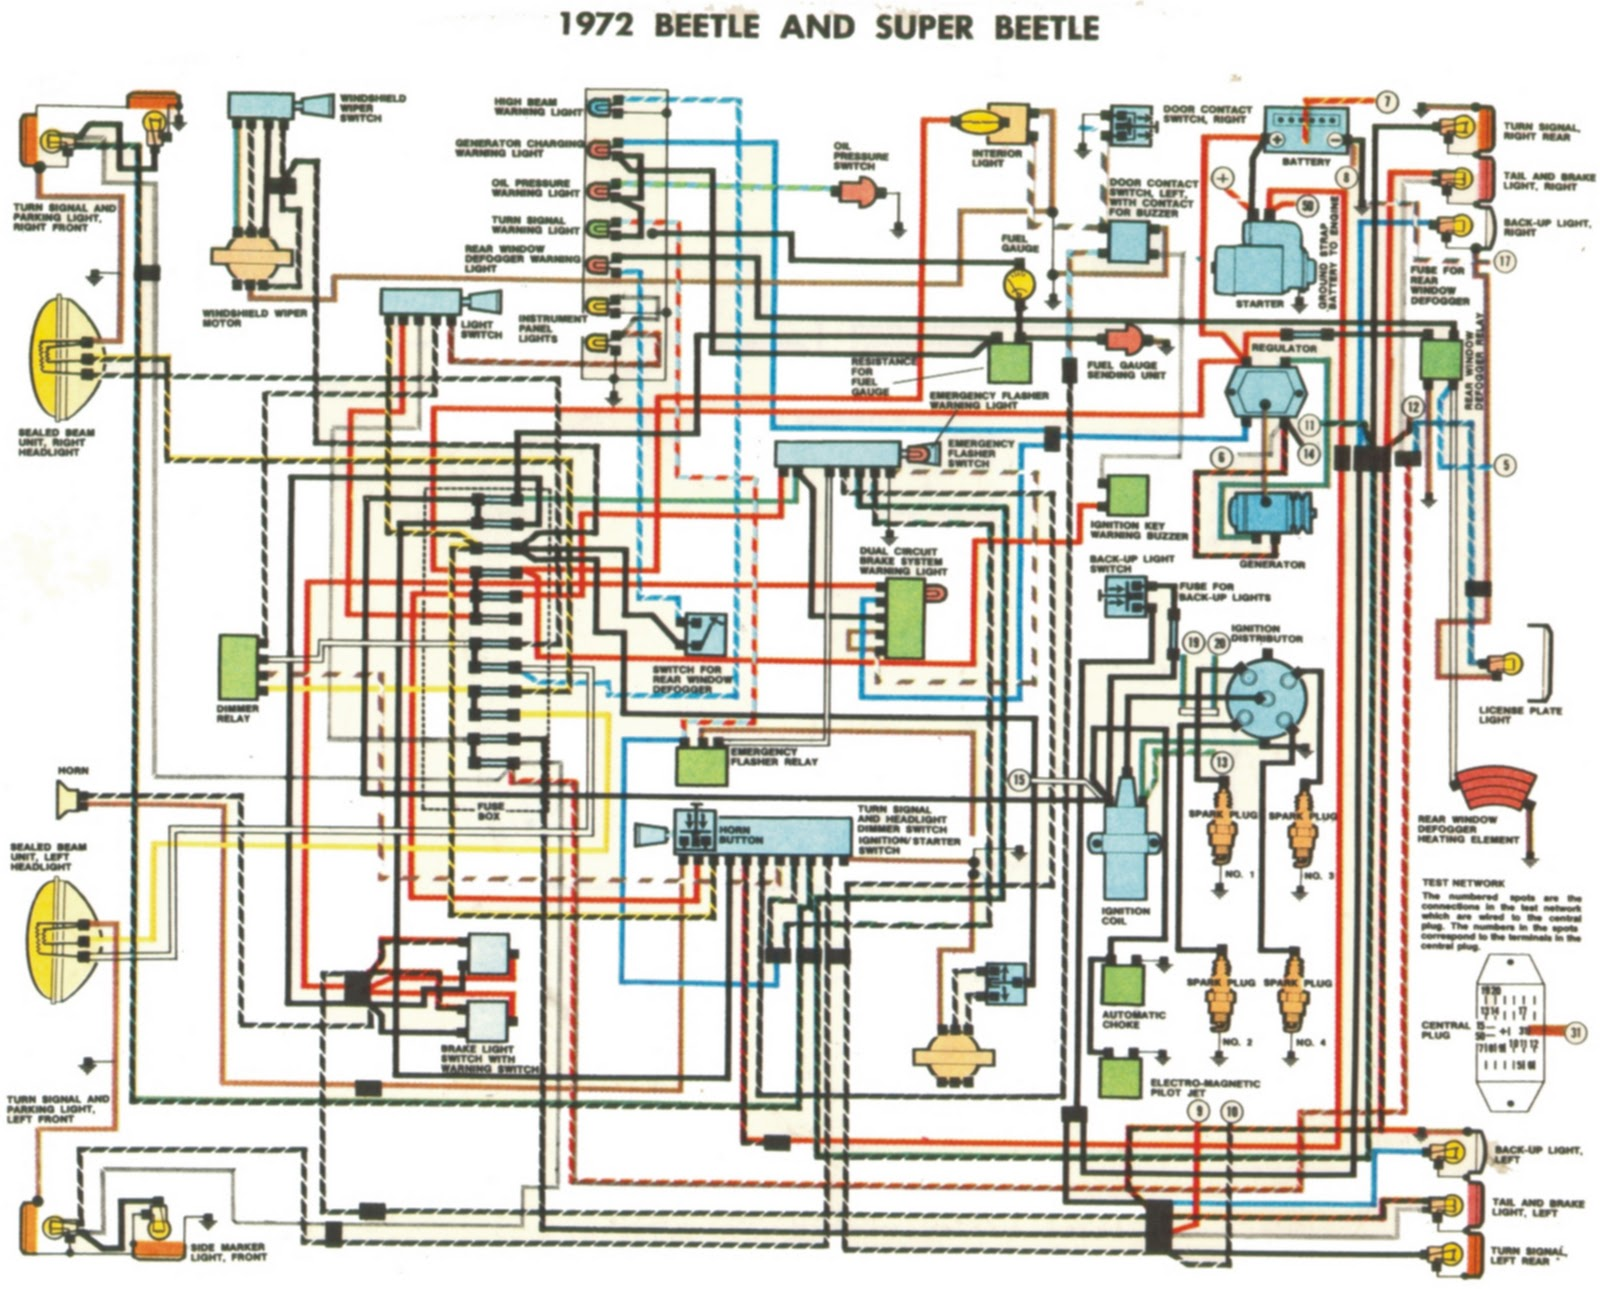 1972 beetle and super beetle wiring diagrams wiring diagram for 1971 vw beetle readingrat net 1971 vw beetle wiring diagram at nearapp.co